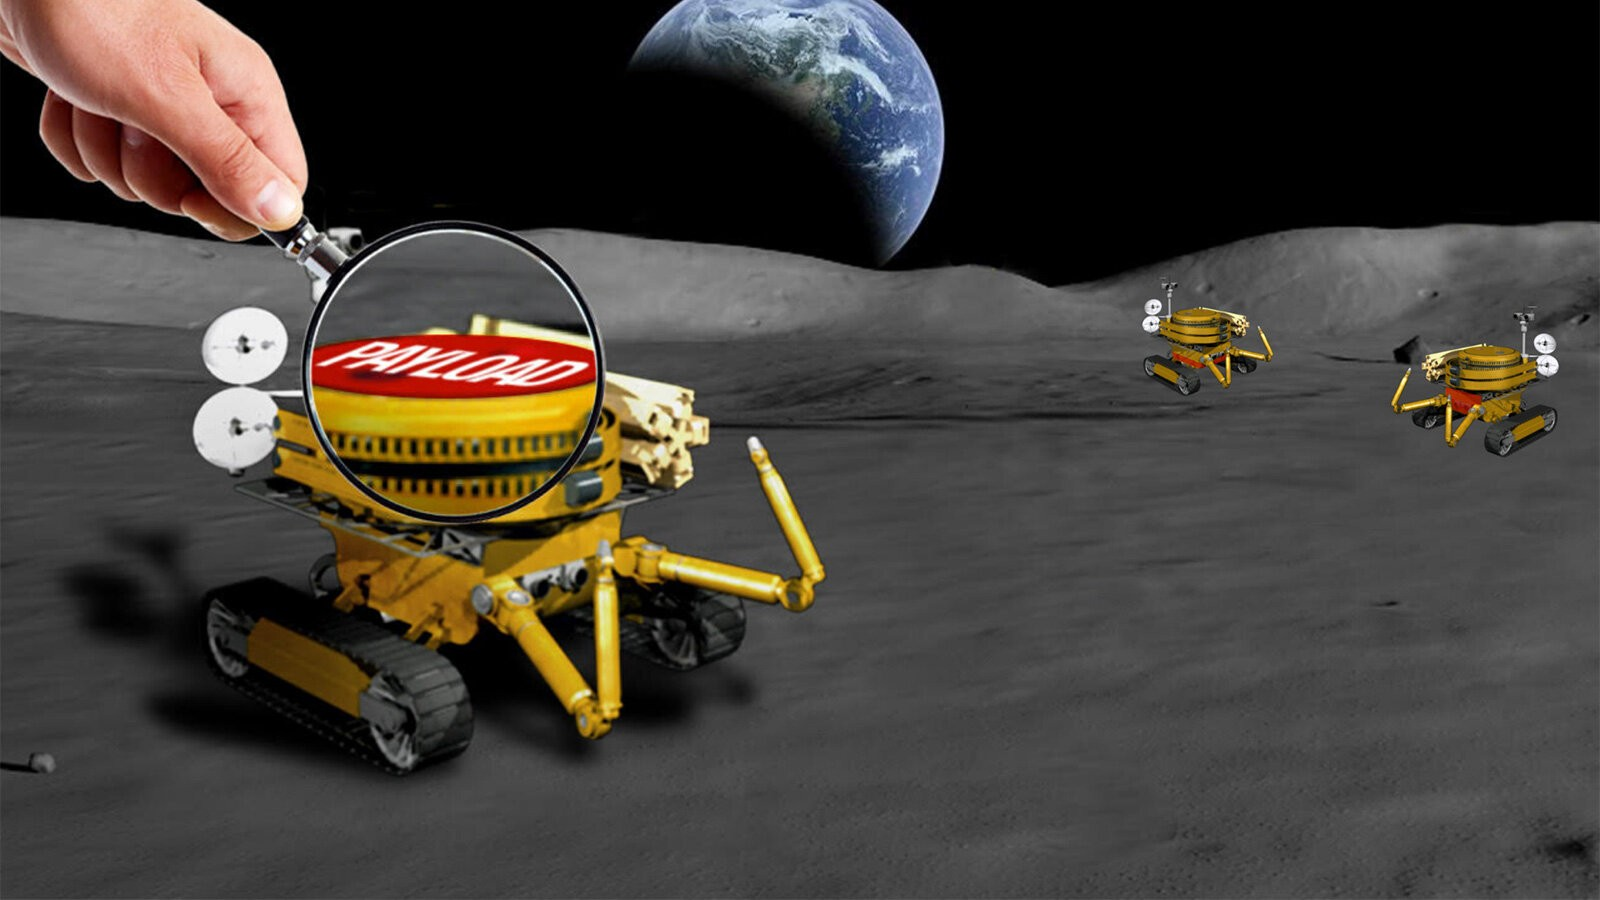 The JPL-led challenge is seeking tiny payloads no larger than a bar of soap for a miniaturized Moon rover. (Image: NASA)